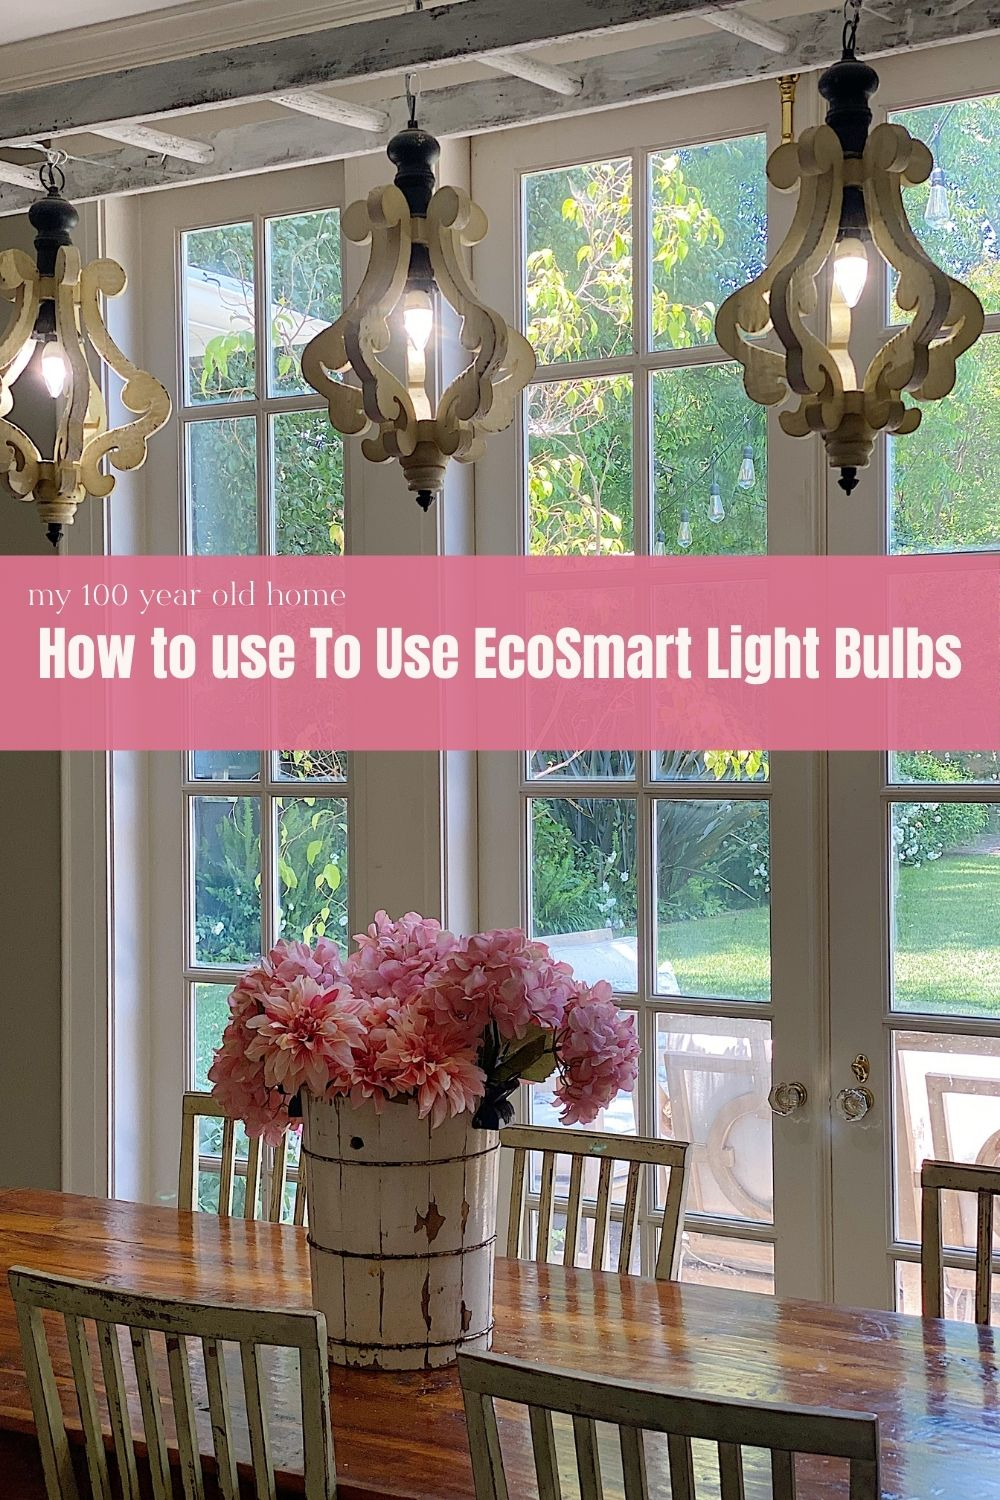 I am getting smarter about the lighting in our home! As you know, I have been focused on making our home smarter with energy efficiency and cost. Today I am sharing five areas in our homes where we can all use EcoSmart light bulbs.